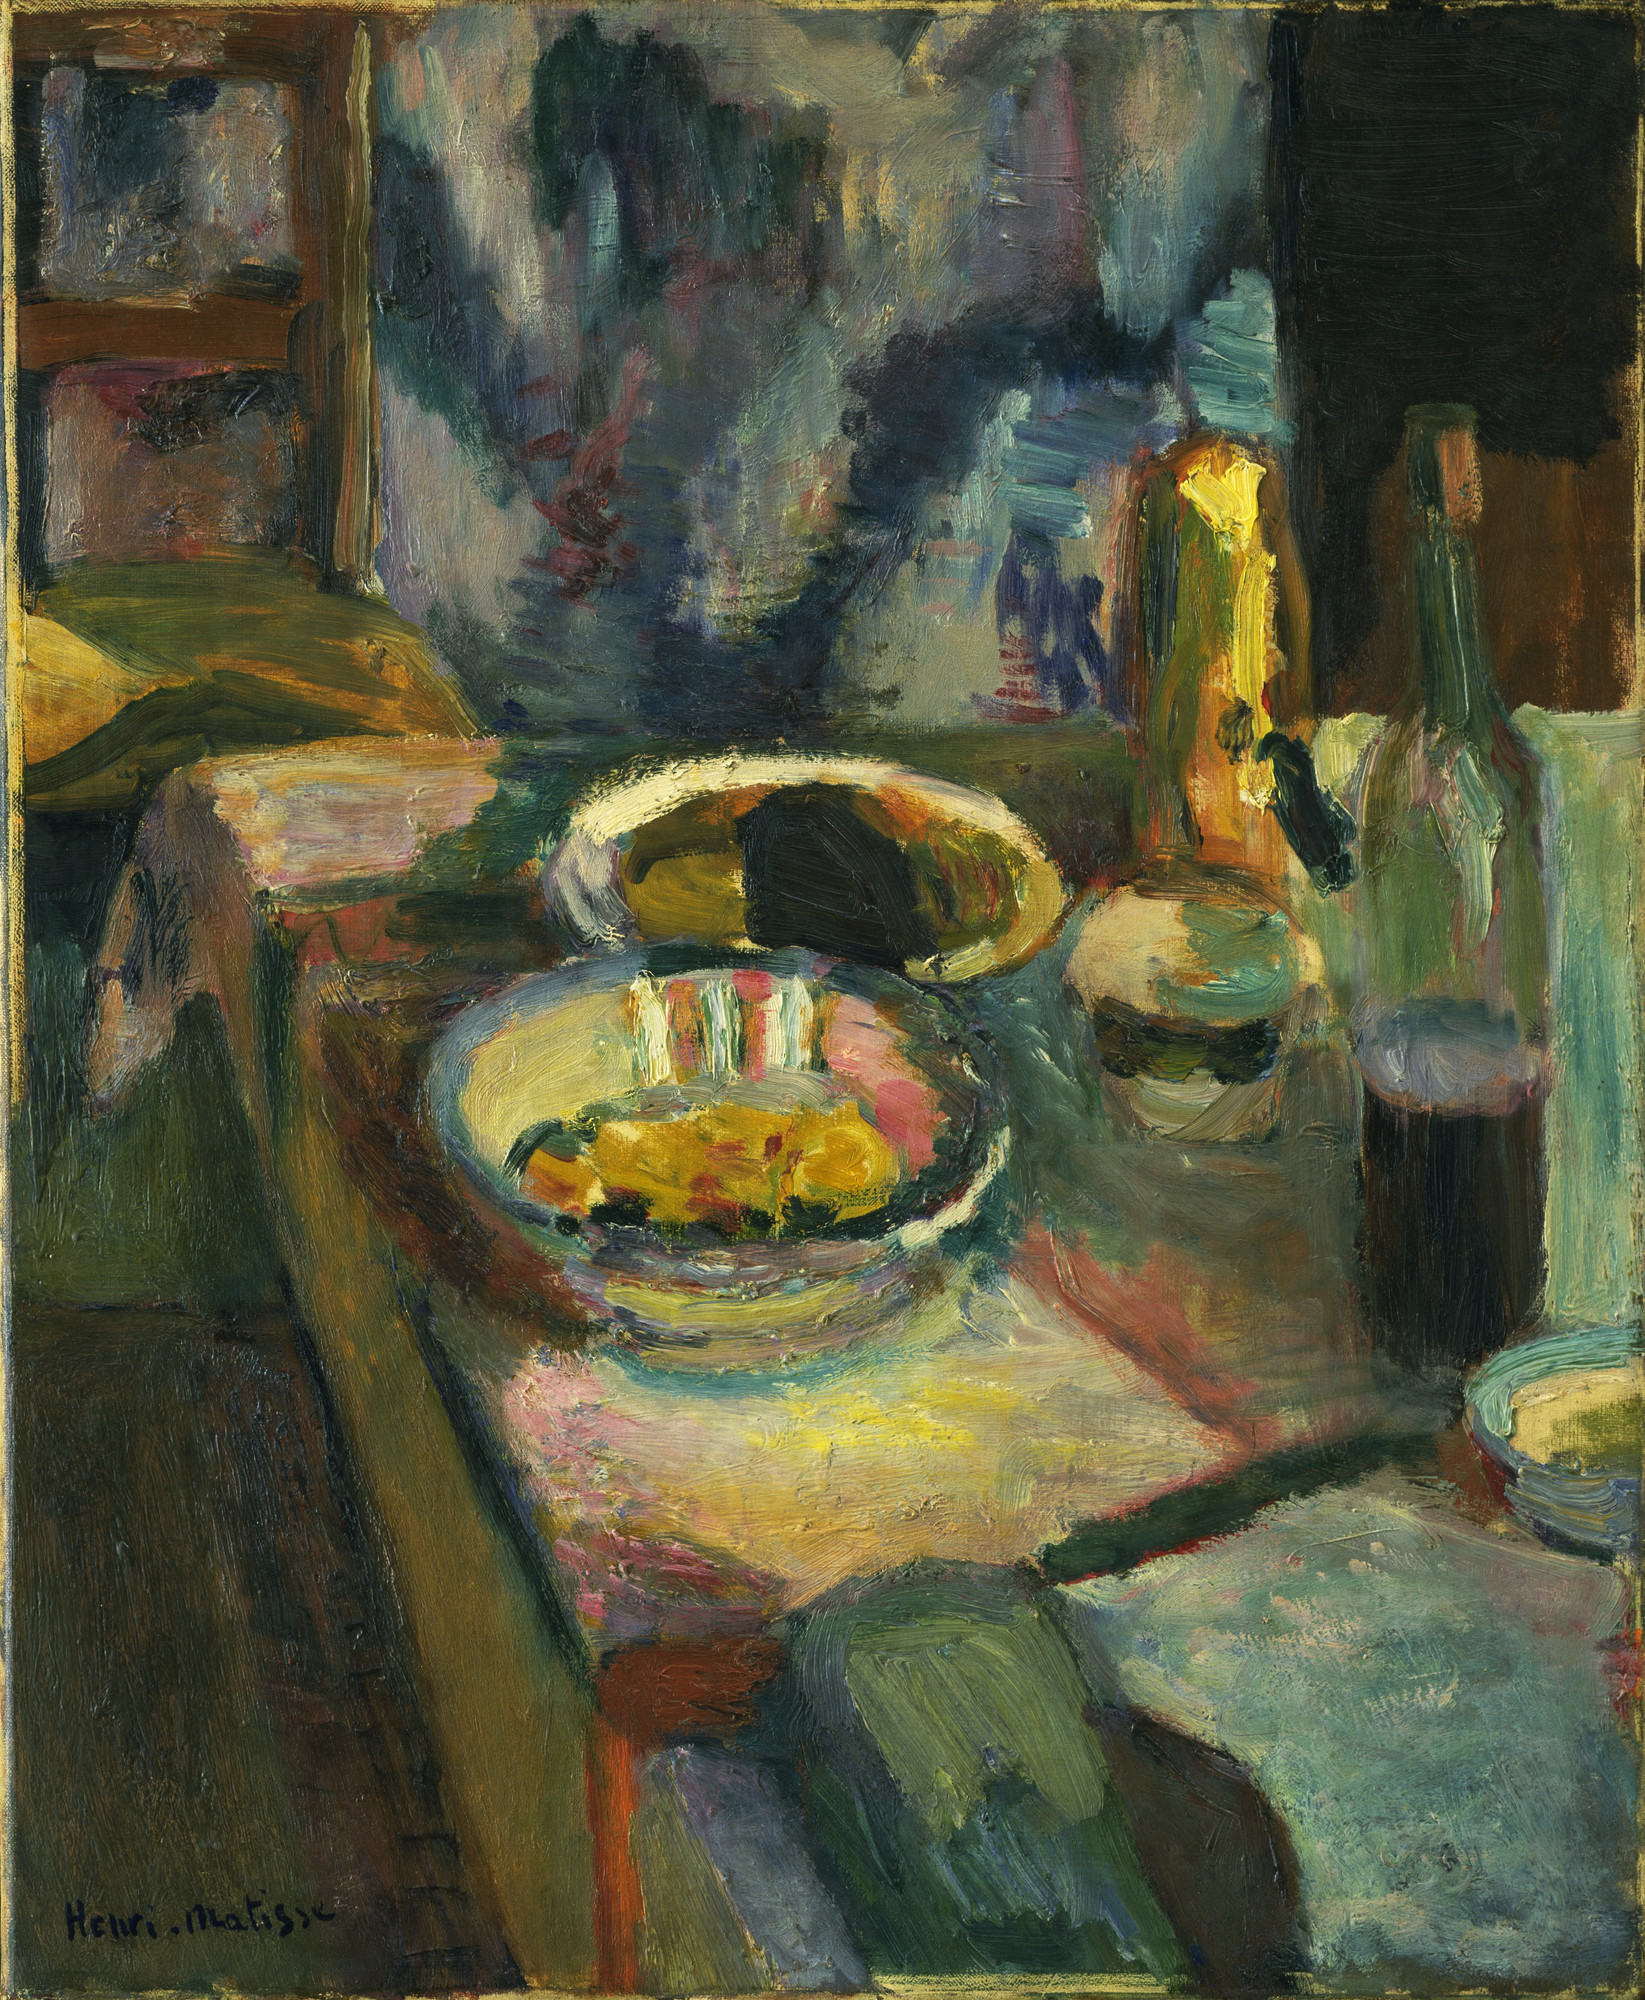 Henri Matisse. Still Life. Paris, early 1899